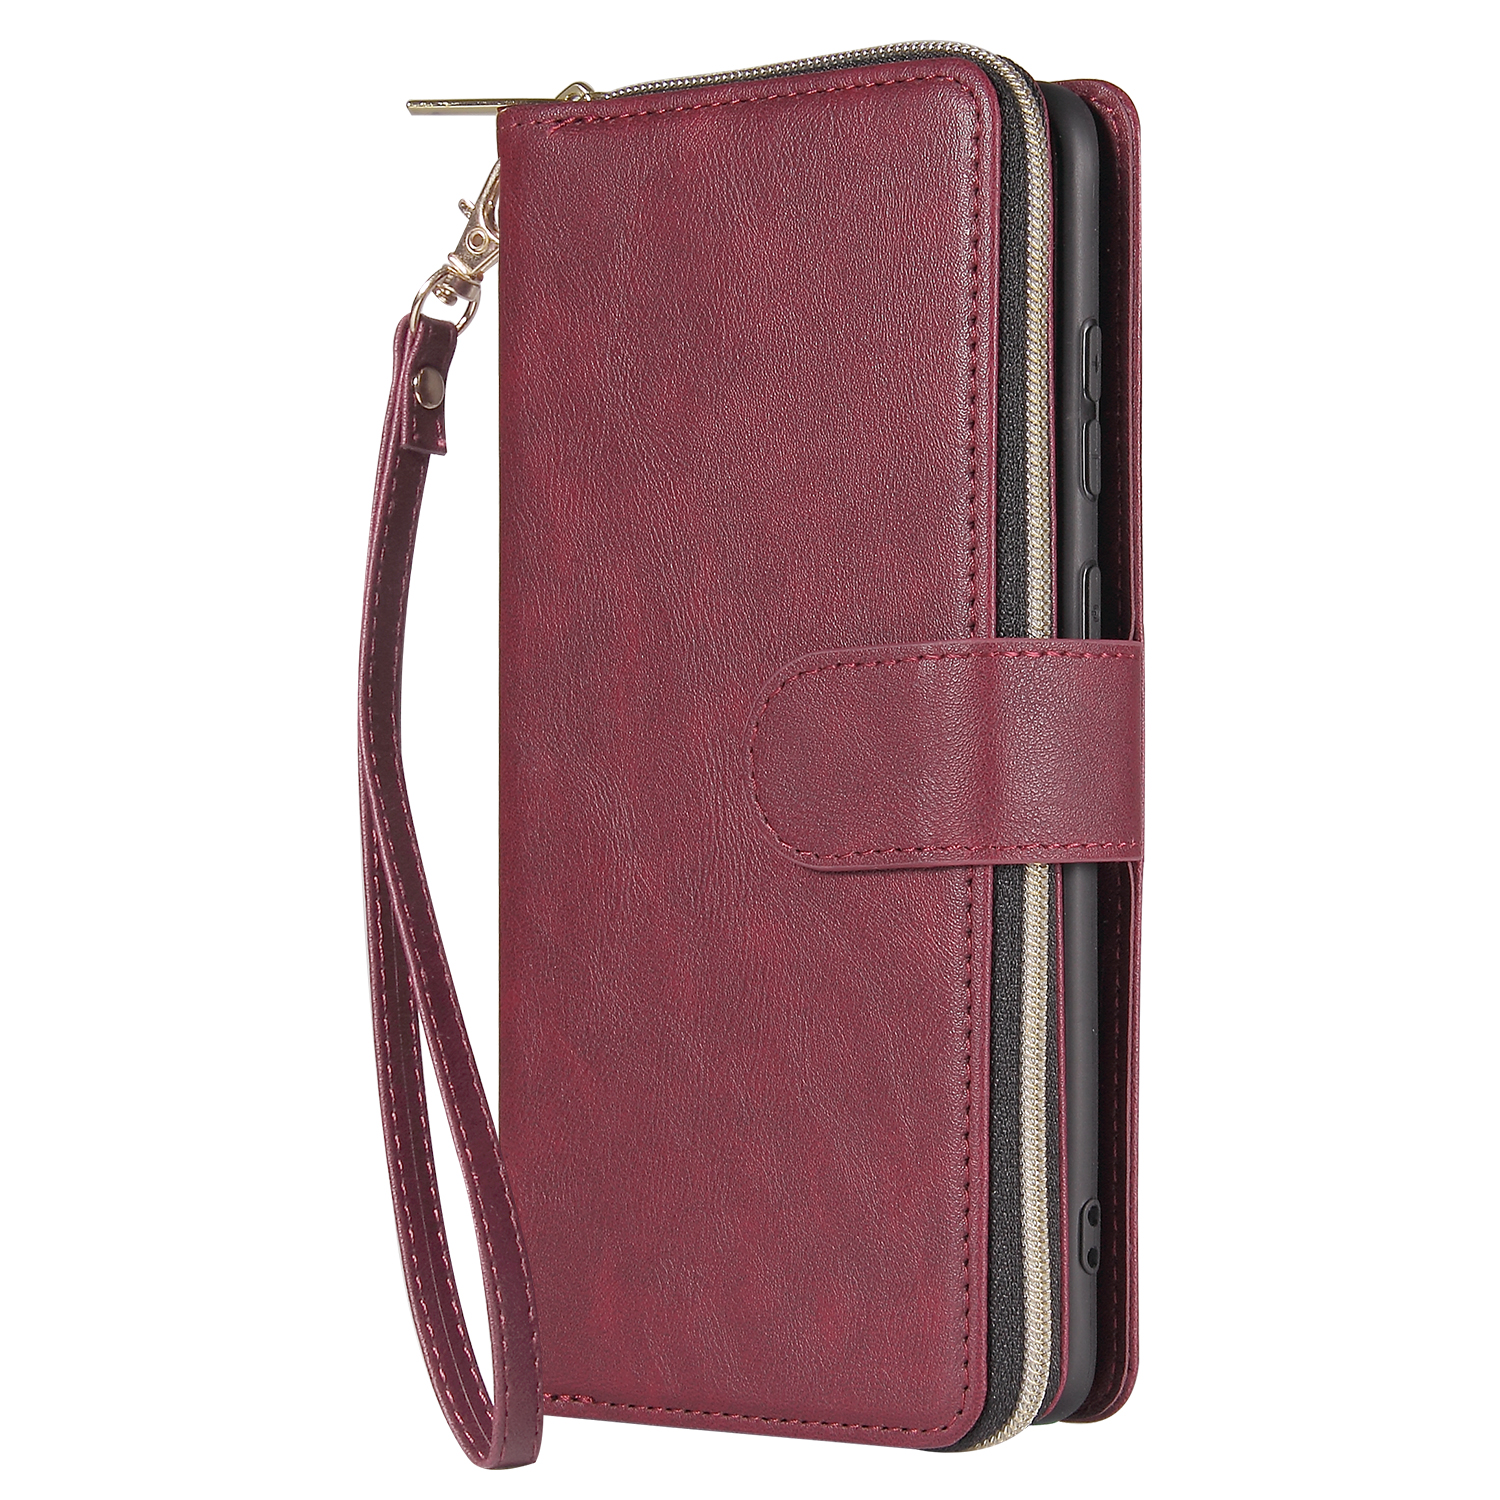 For Samsung S10/S20/S10E/ S10 Plus Pu Leather  Mobile Phone Cover Zipper Card Bag + Wrist Strap Red wine